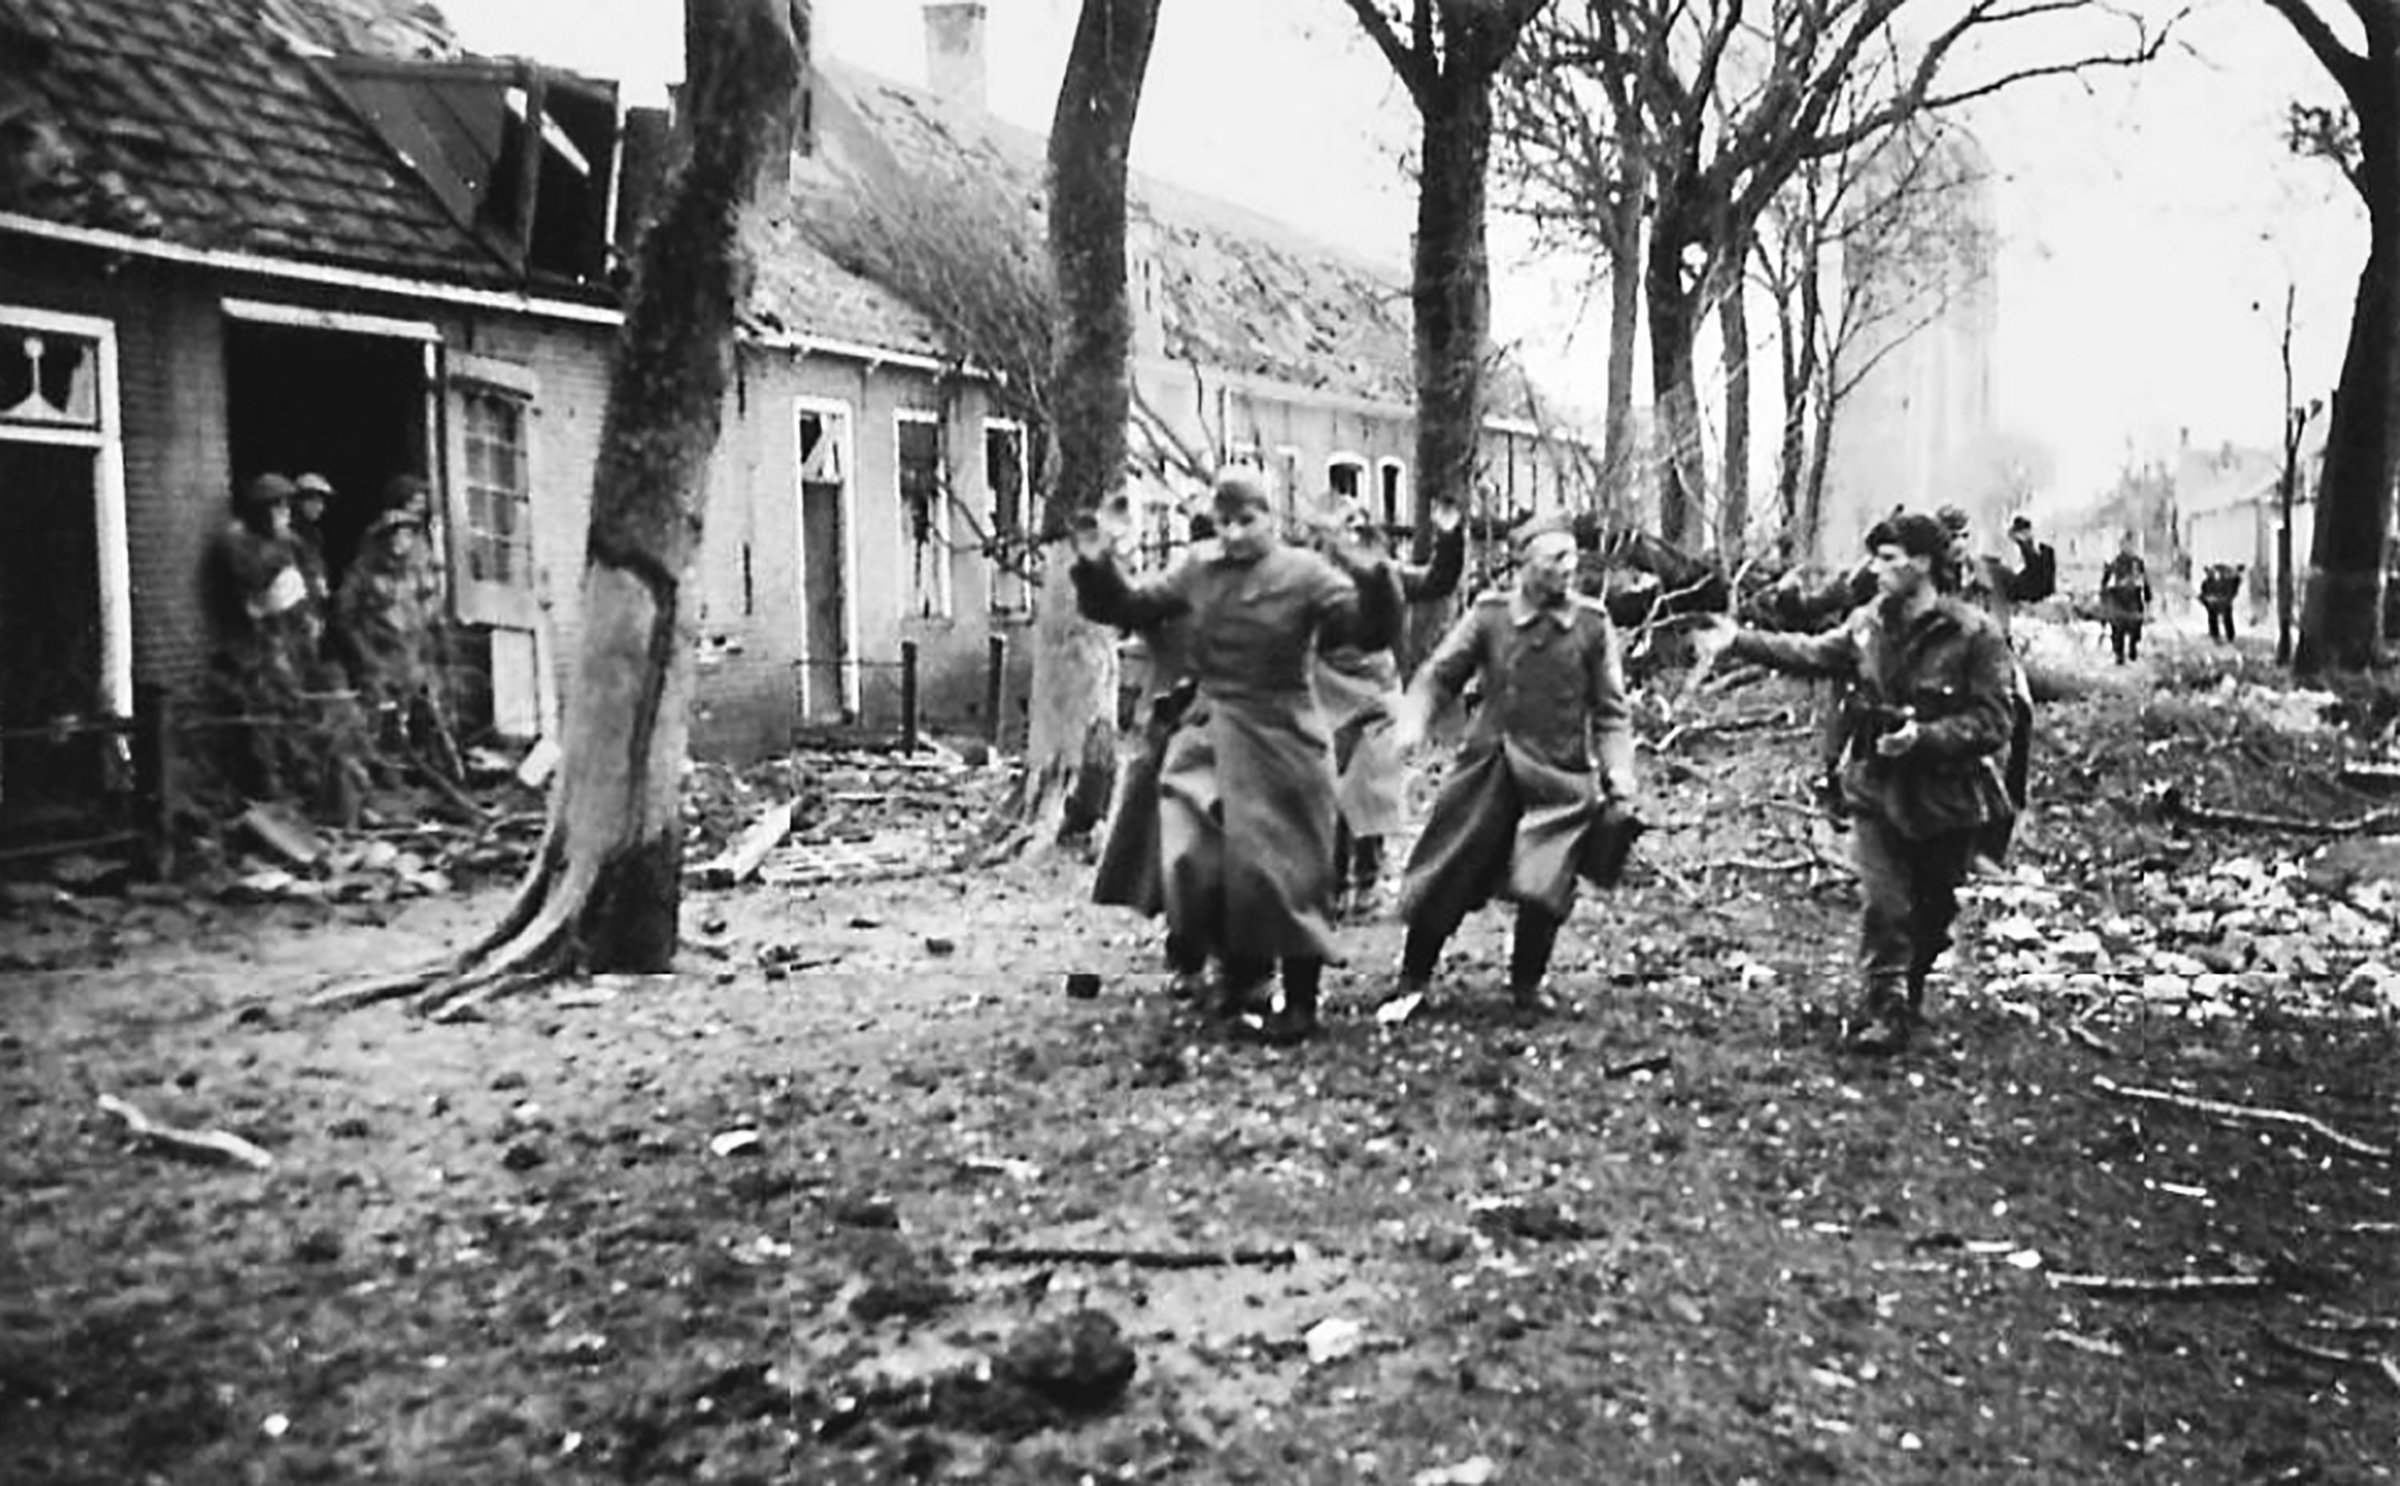 Maurice Latimer, on right, with captured prisoners from the Westkapelle lighthouse, Walcheren, November 1, 1944